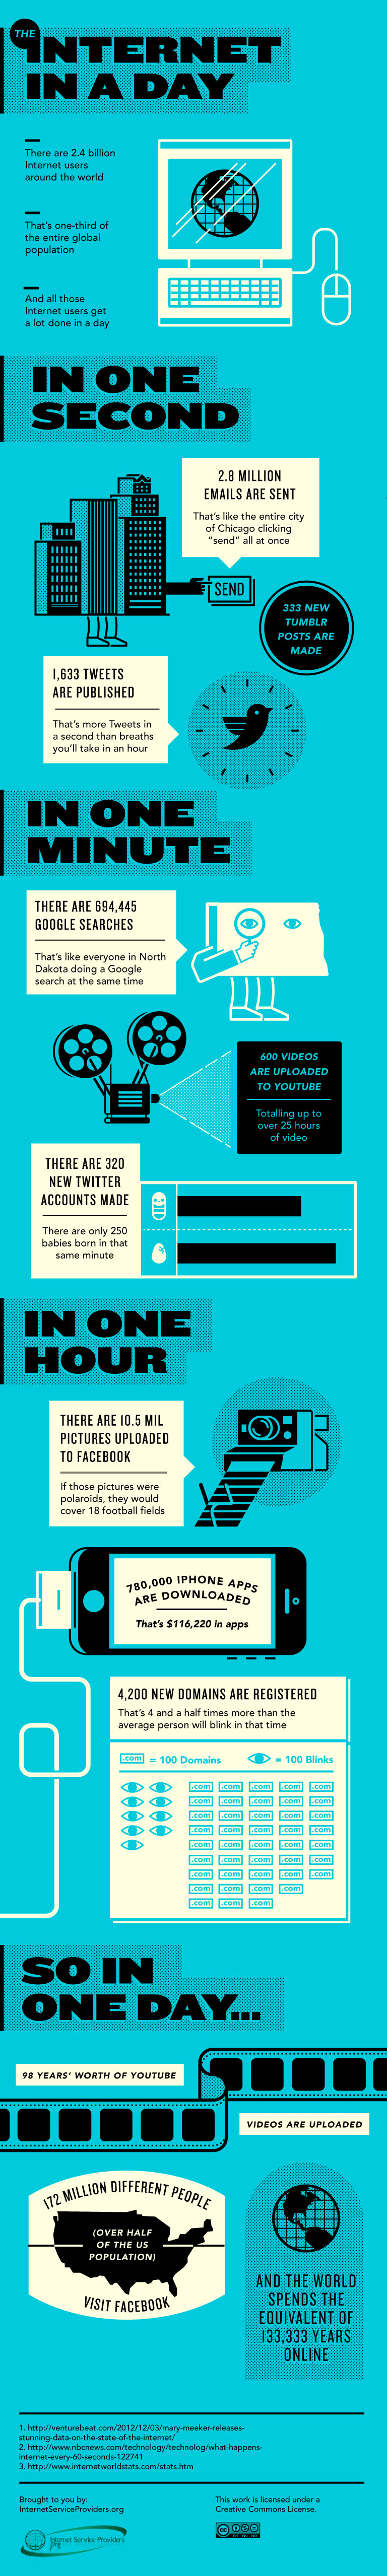 Internet Round the Clock-Infographic